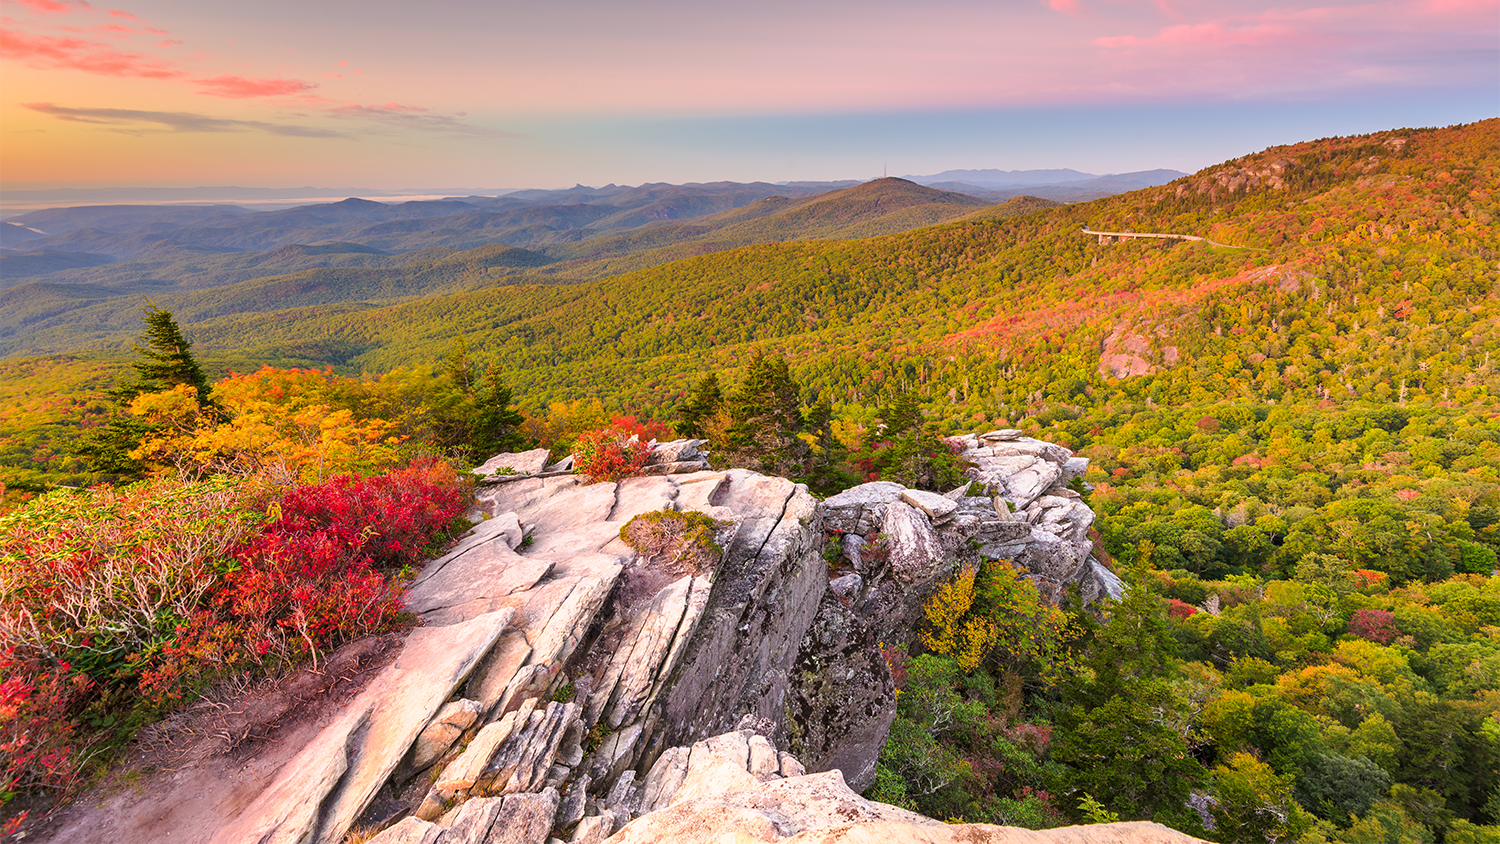 colorful leaves near mountains - Fall Foilage 2020: Here's What to Expect in North Carolina - Forestry and Environmental Resources NC State University